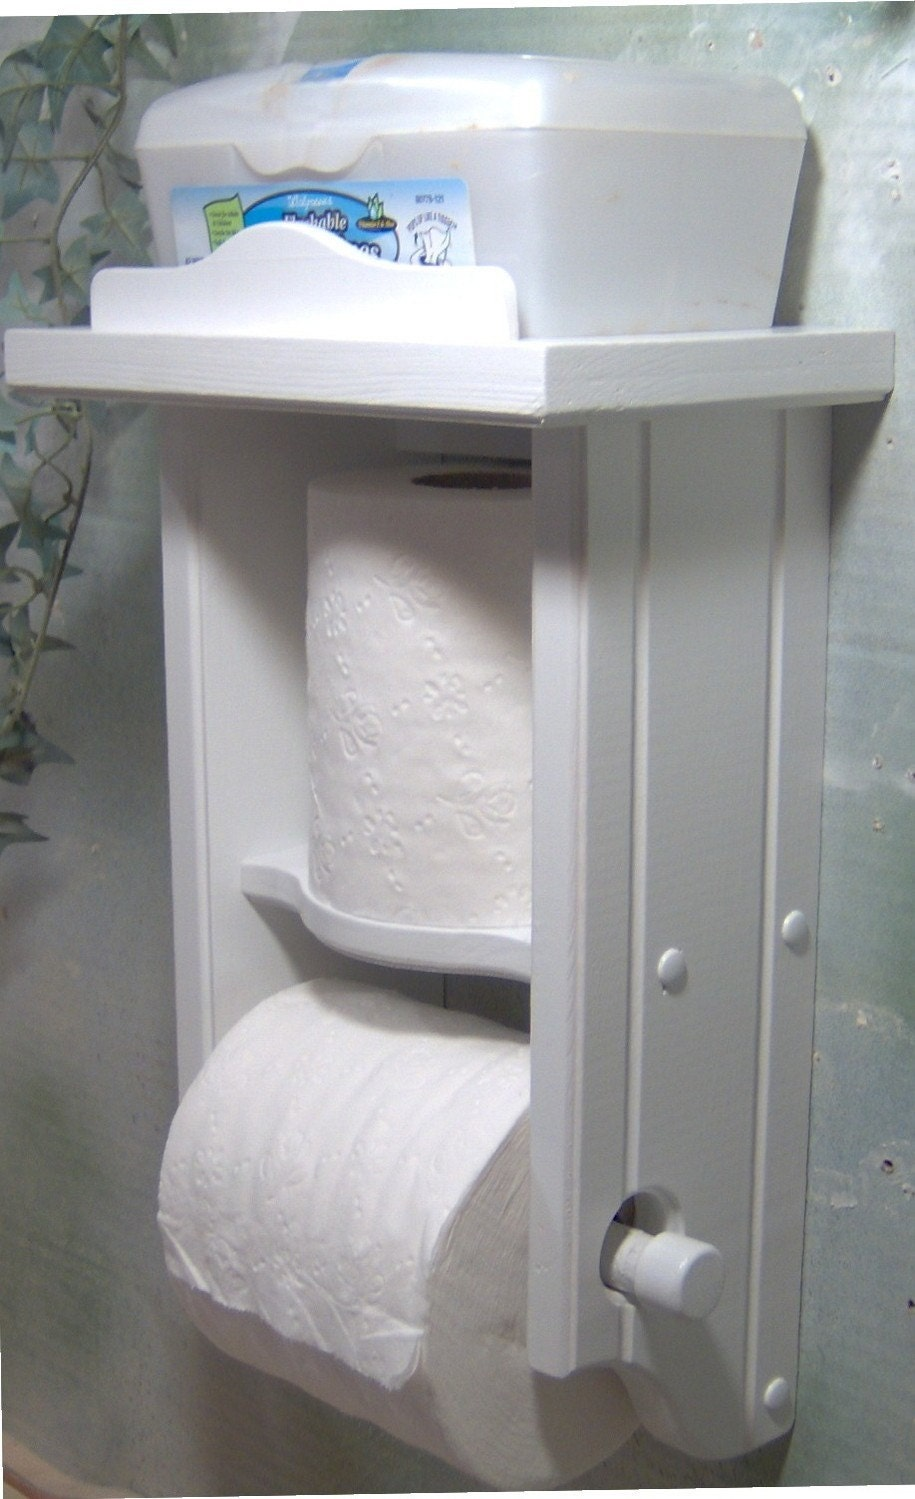 White Toilet Paper Holder Extra Roll With Shelf